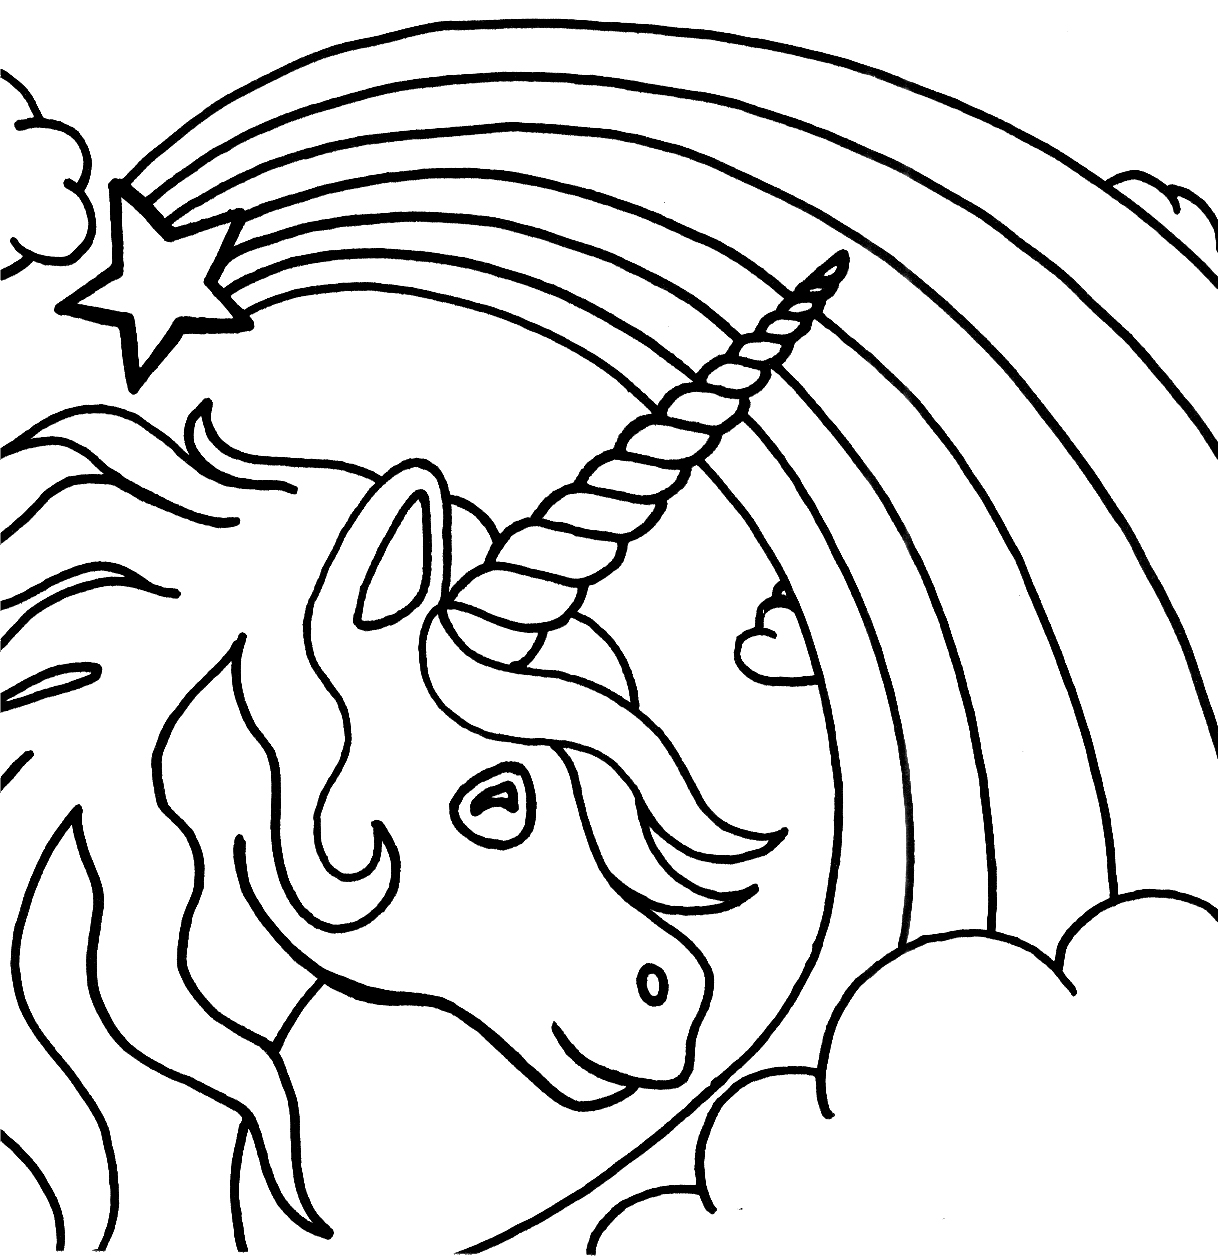 Coloring Pages For Kids Free Printable Unicorn Coloring Pages For Kids